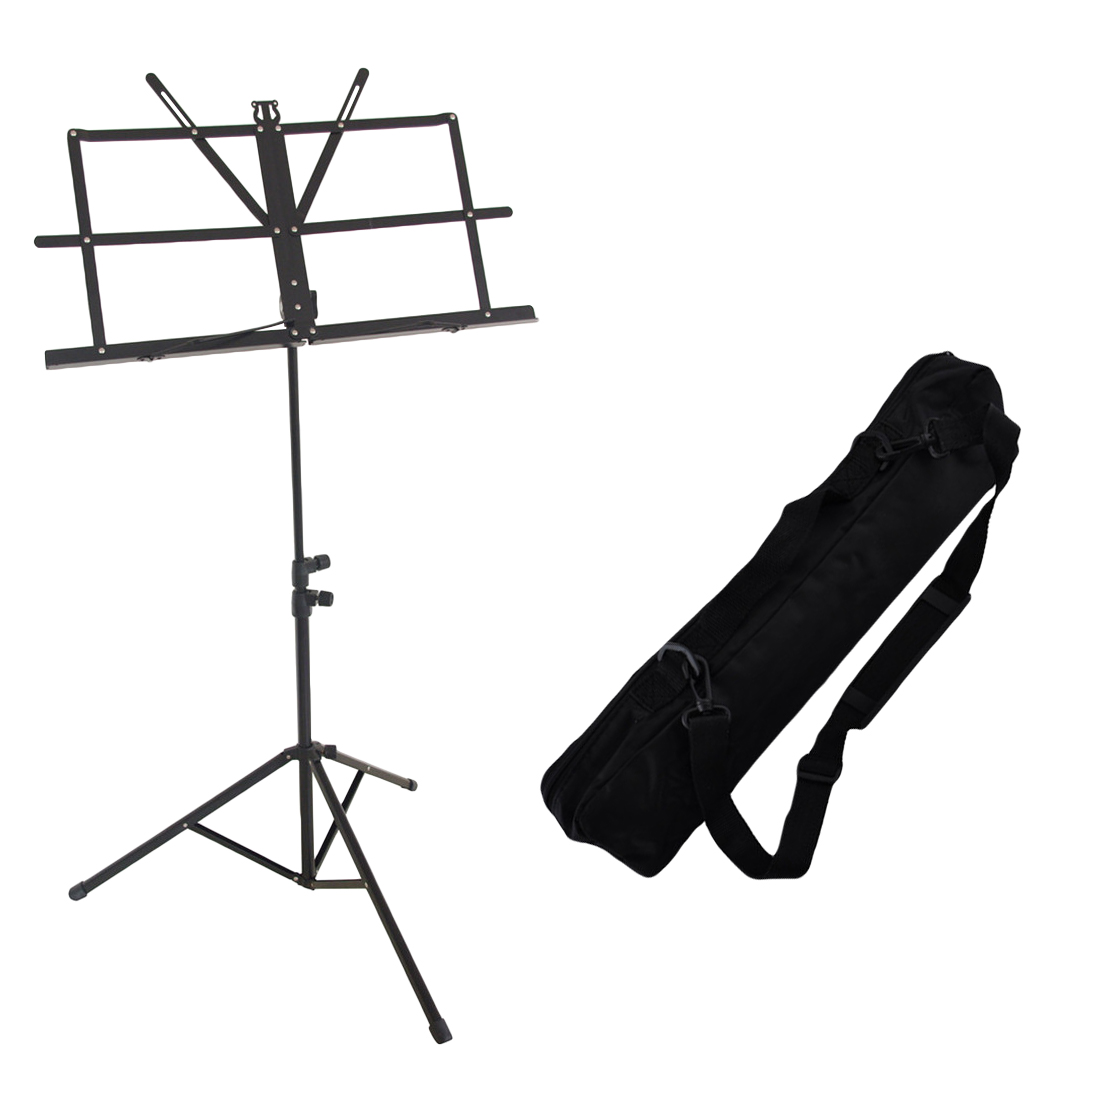 Foldable Sheet Music Tripod Stand Holder Adjustable Ultra-Light with Waterproof Carry Bag for Violin Guitar Musical Performance aluminium alloy professional fl 05r foldable small music stand musical instrument with double quilted carry bag 4 colors